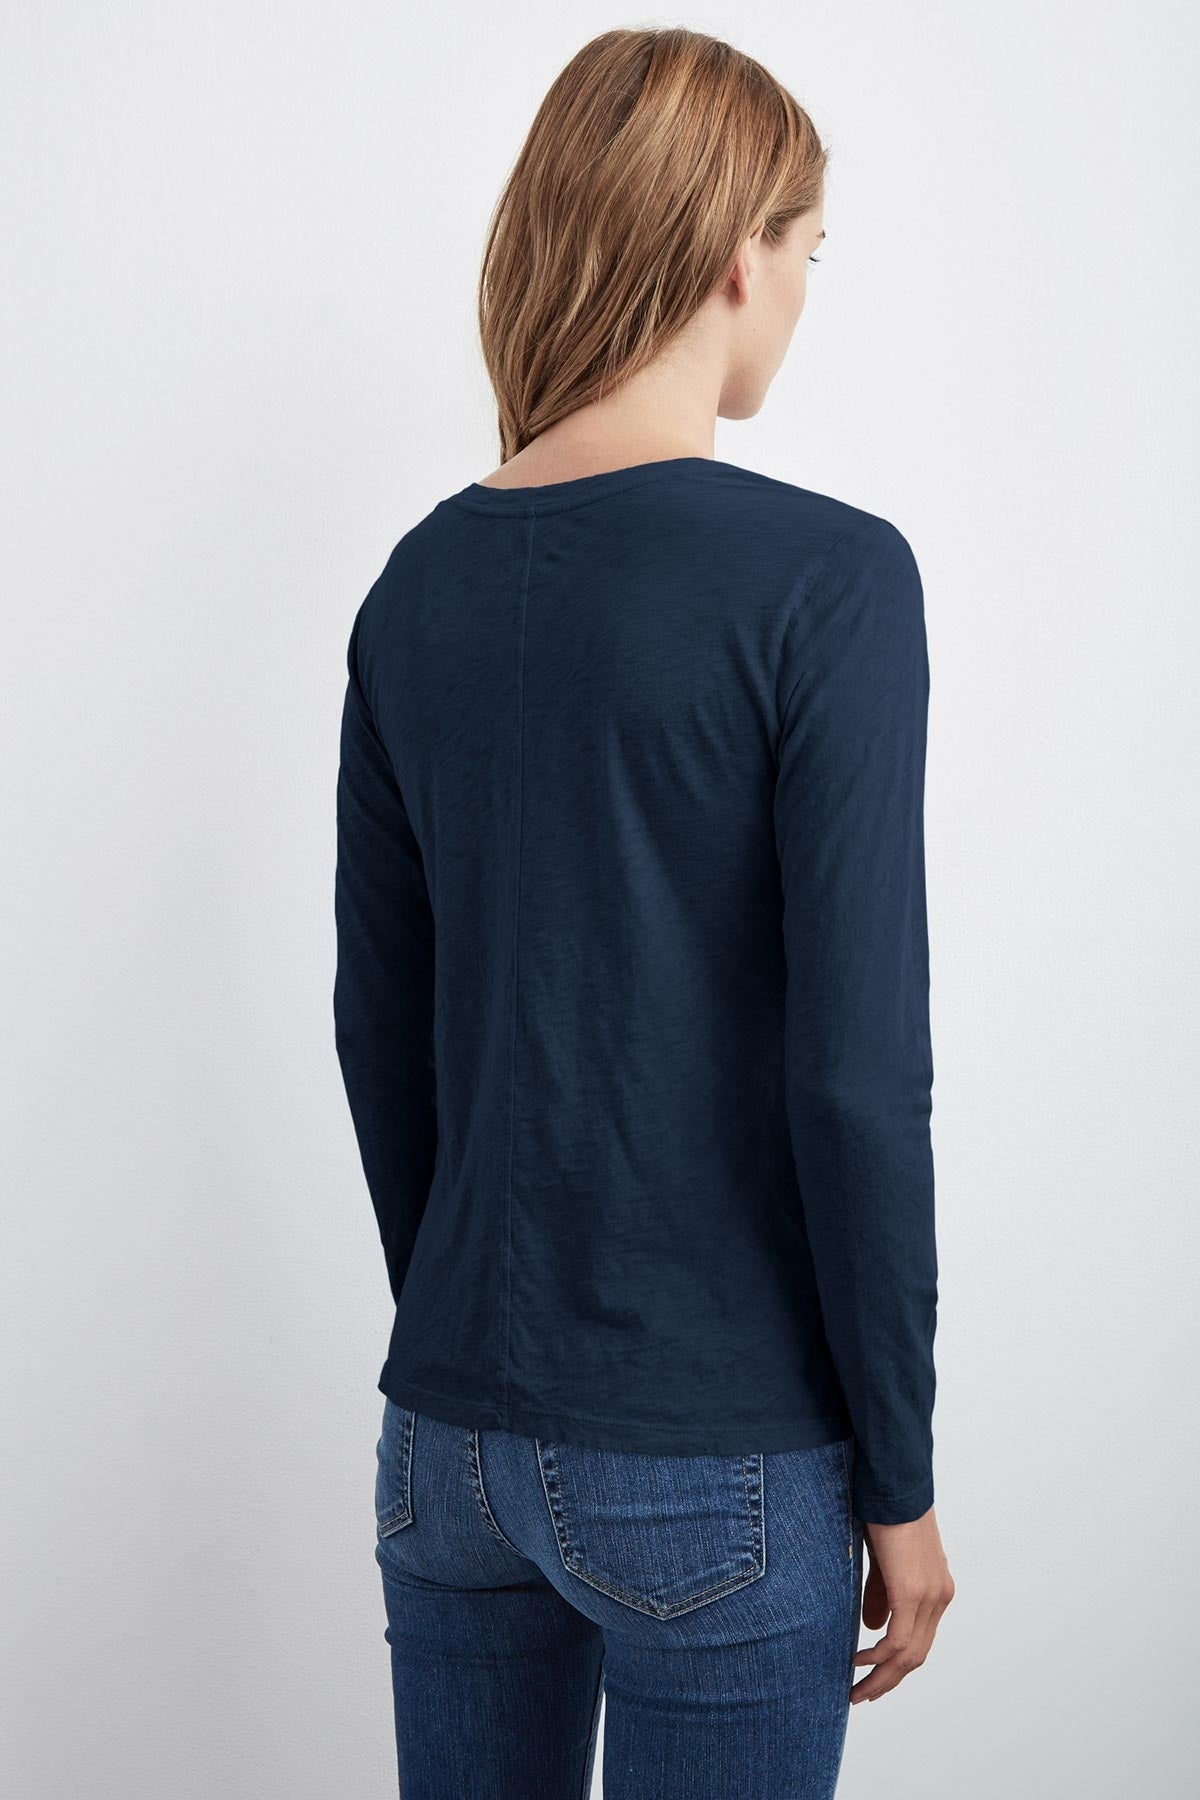 KILIA COTTON SLUB ROUND NECK TEE